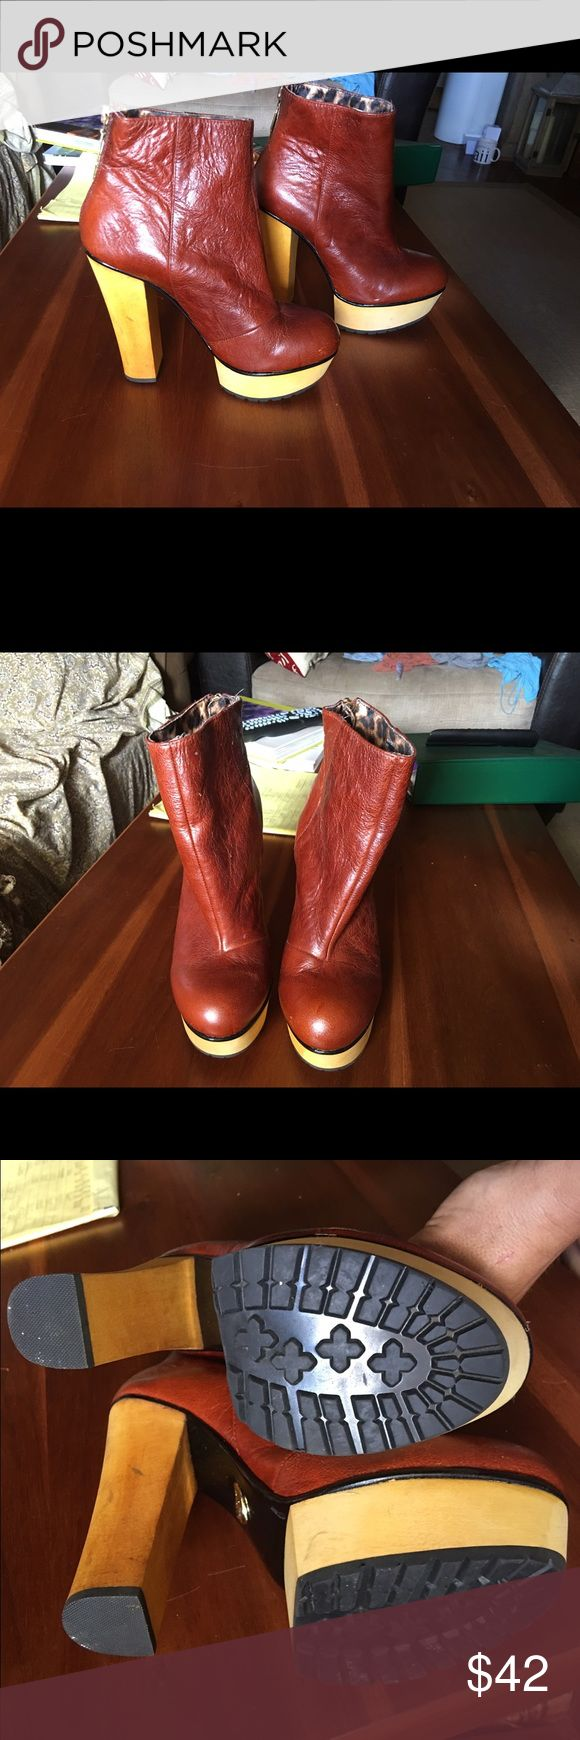 Betsey Johnson platforms. Size 8. Like new Like new. Never worn. Cinnamon leather colored Betsey Johnson platform heels. Size 8, lightning bolt zipper pulls on rear ankle.  Leather upper wooden lower Betsey Johnson Shoes Ankle Boots & Booties